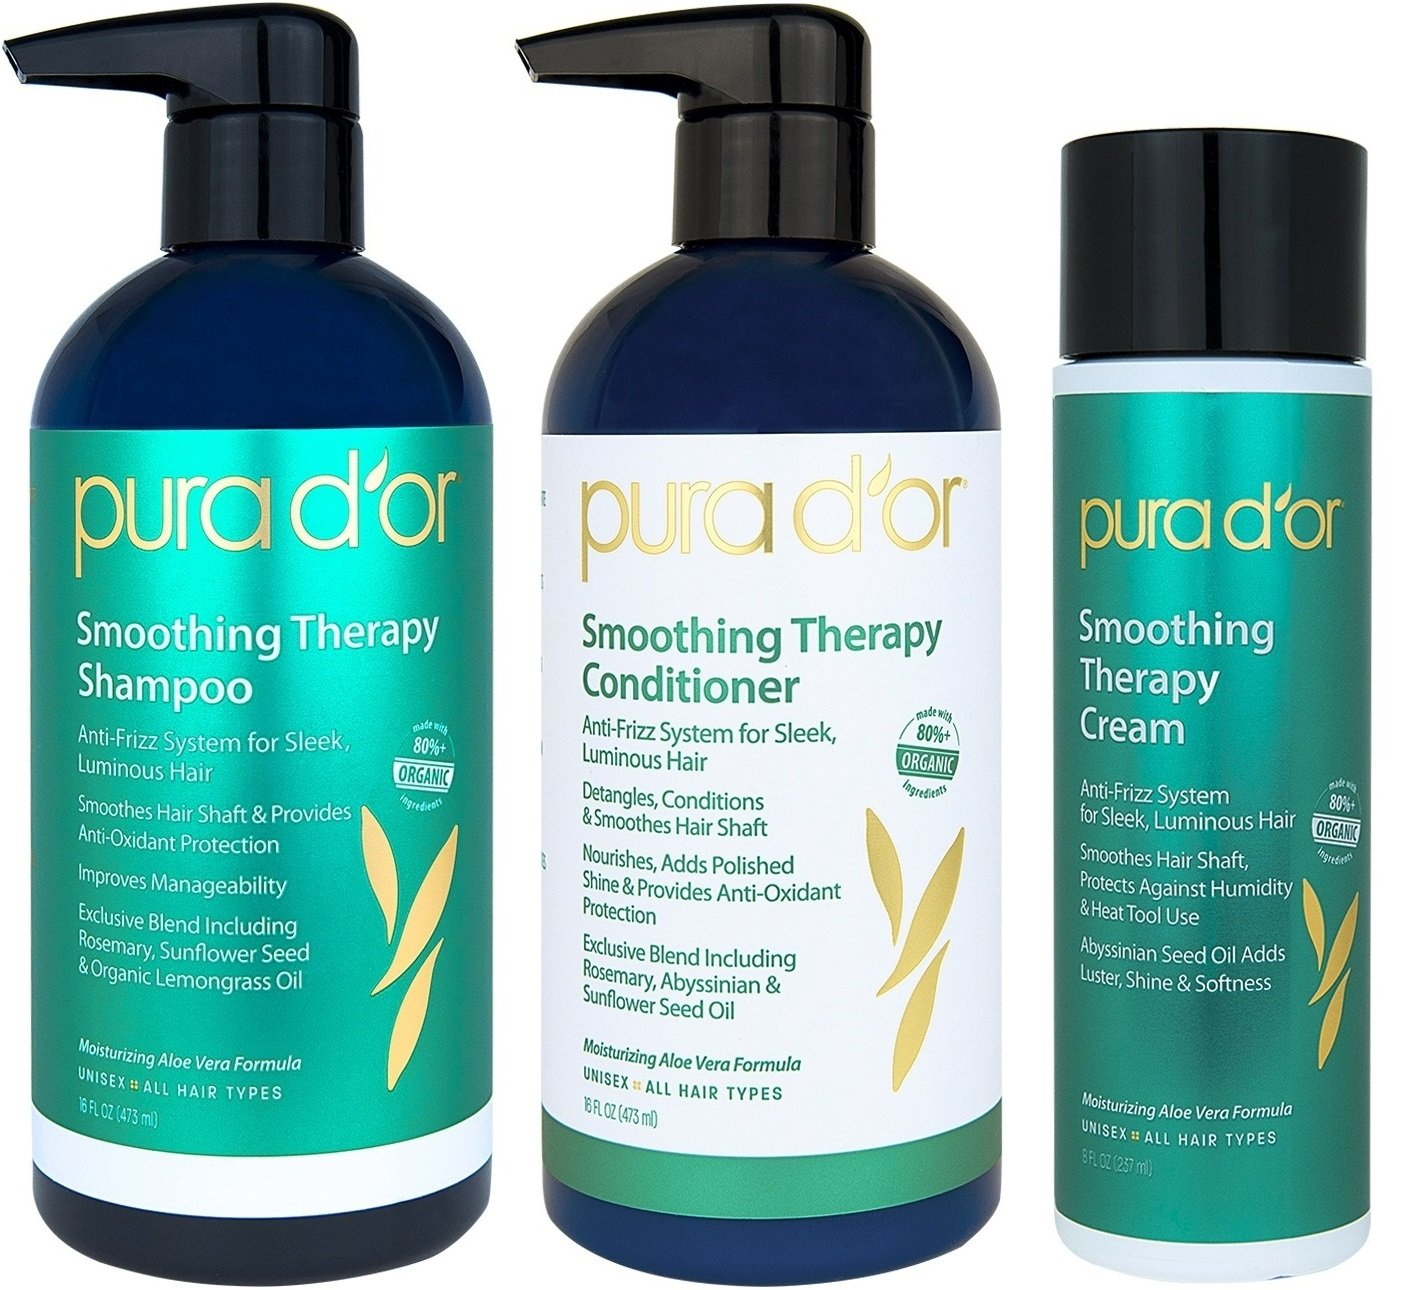 PURA D'OR Smoothing Therapy Shampoo, Conditioner, and Styling Cream 3-Piece Set - For Anti-Frizz, Dull, Dry, Brittle Hair, Sulfate Free with Natural Ingredients, Men & Women (Packaging may vary)